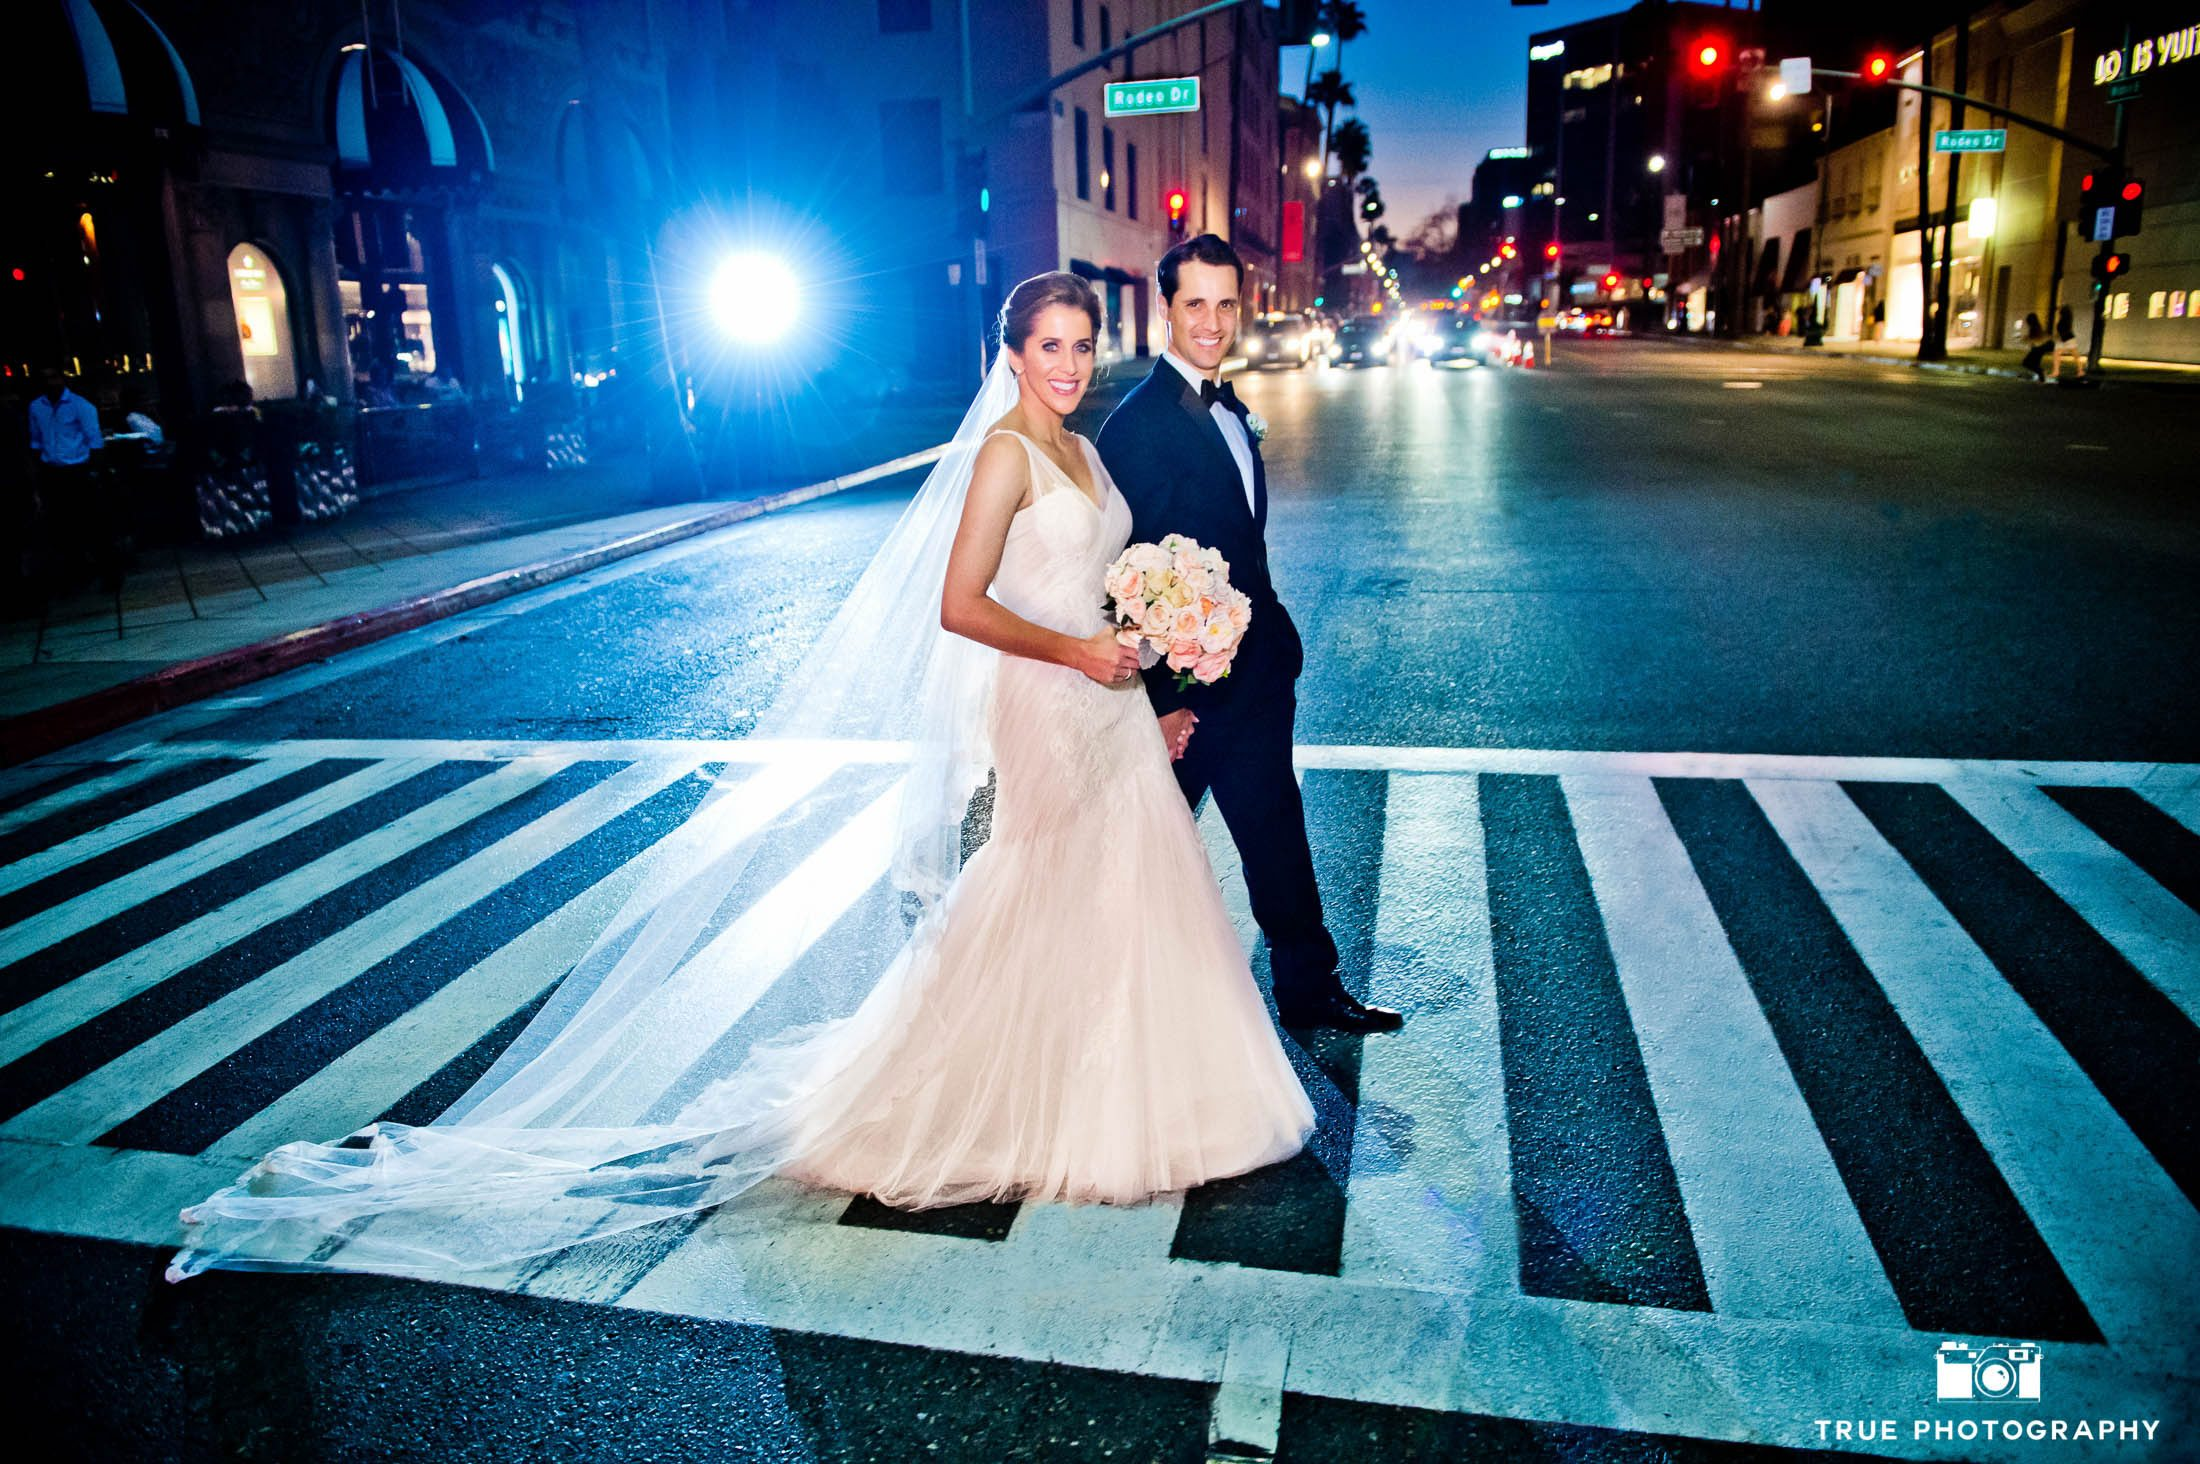 Bride and groom walking in San Diego during night photo